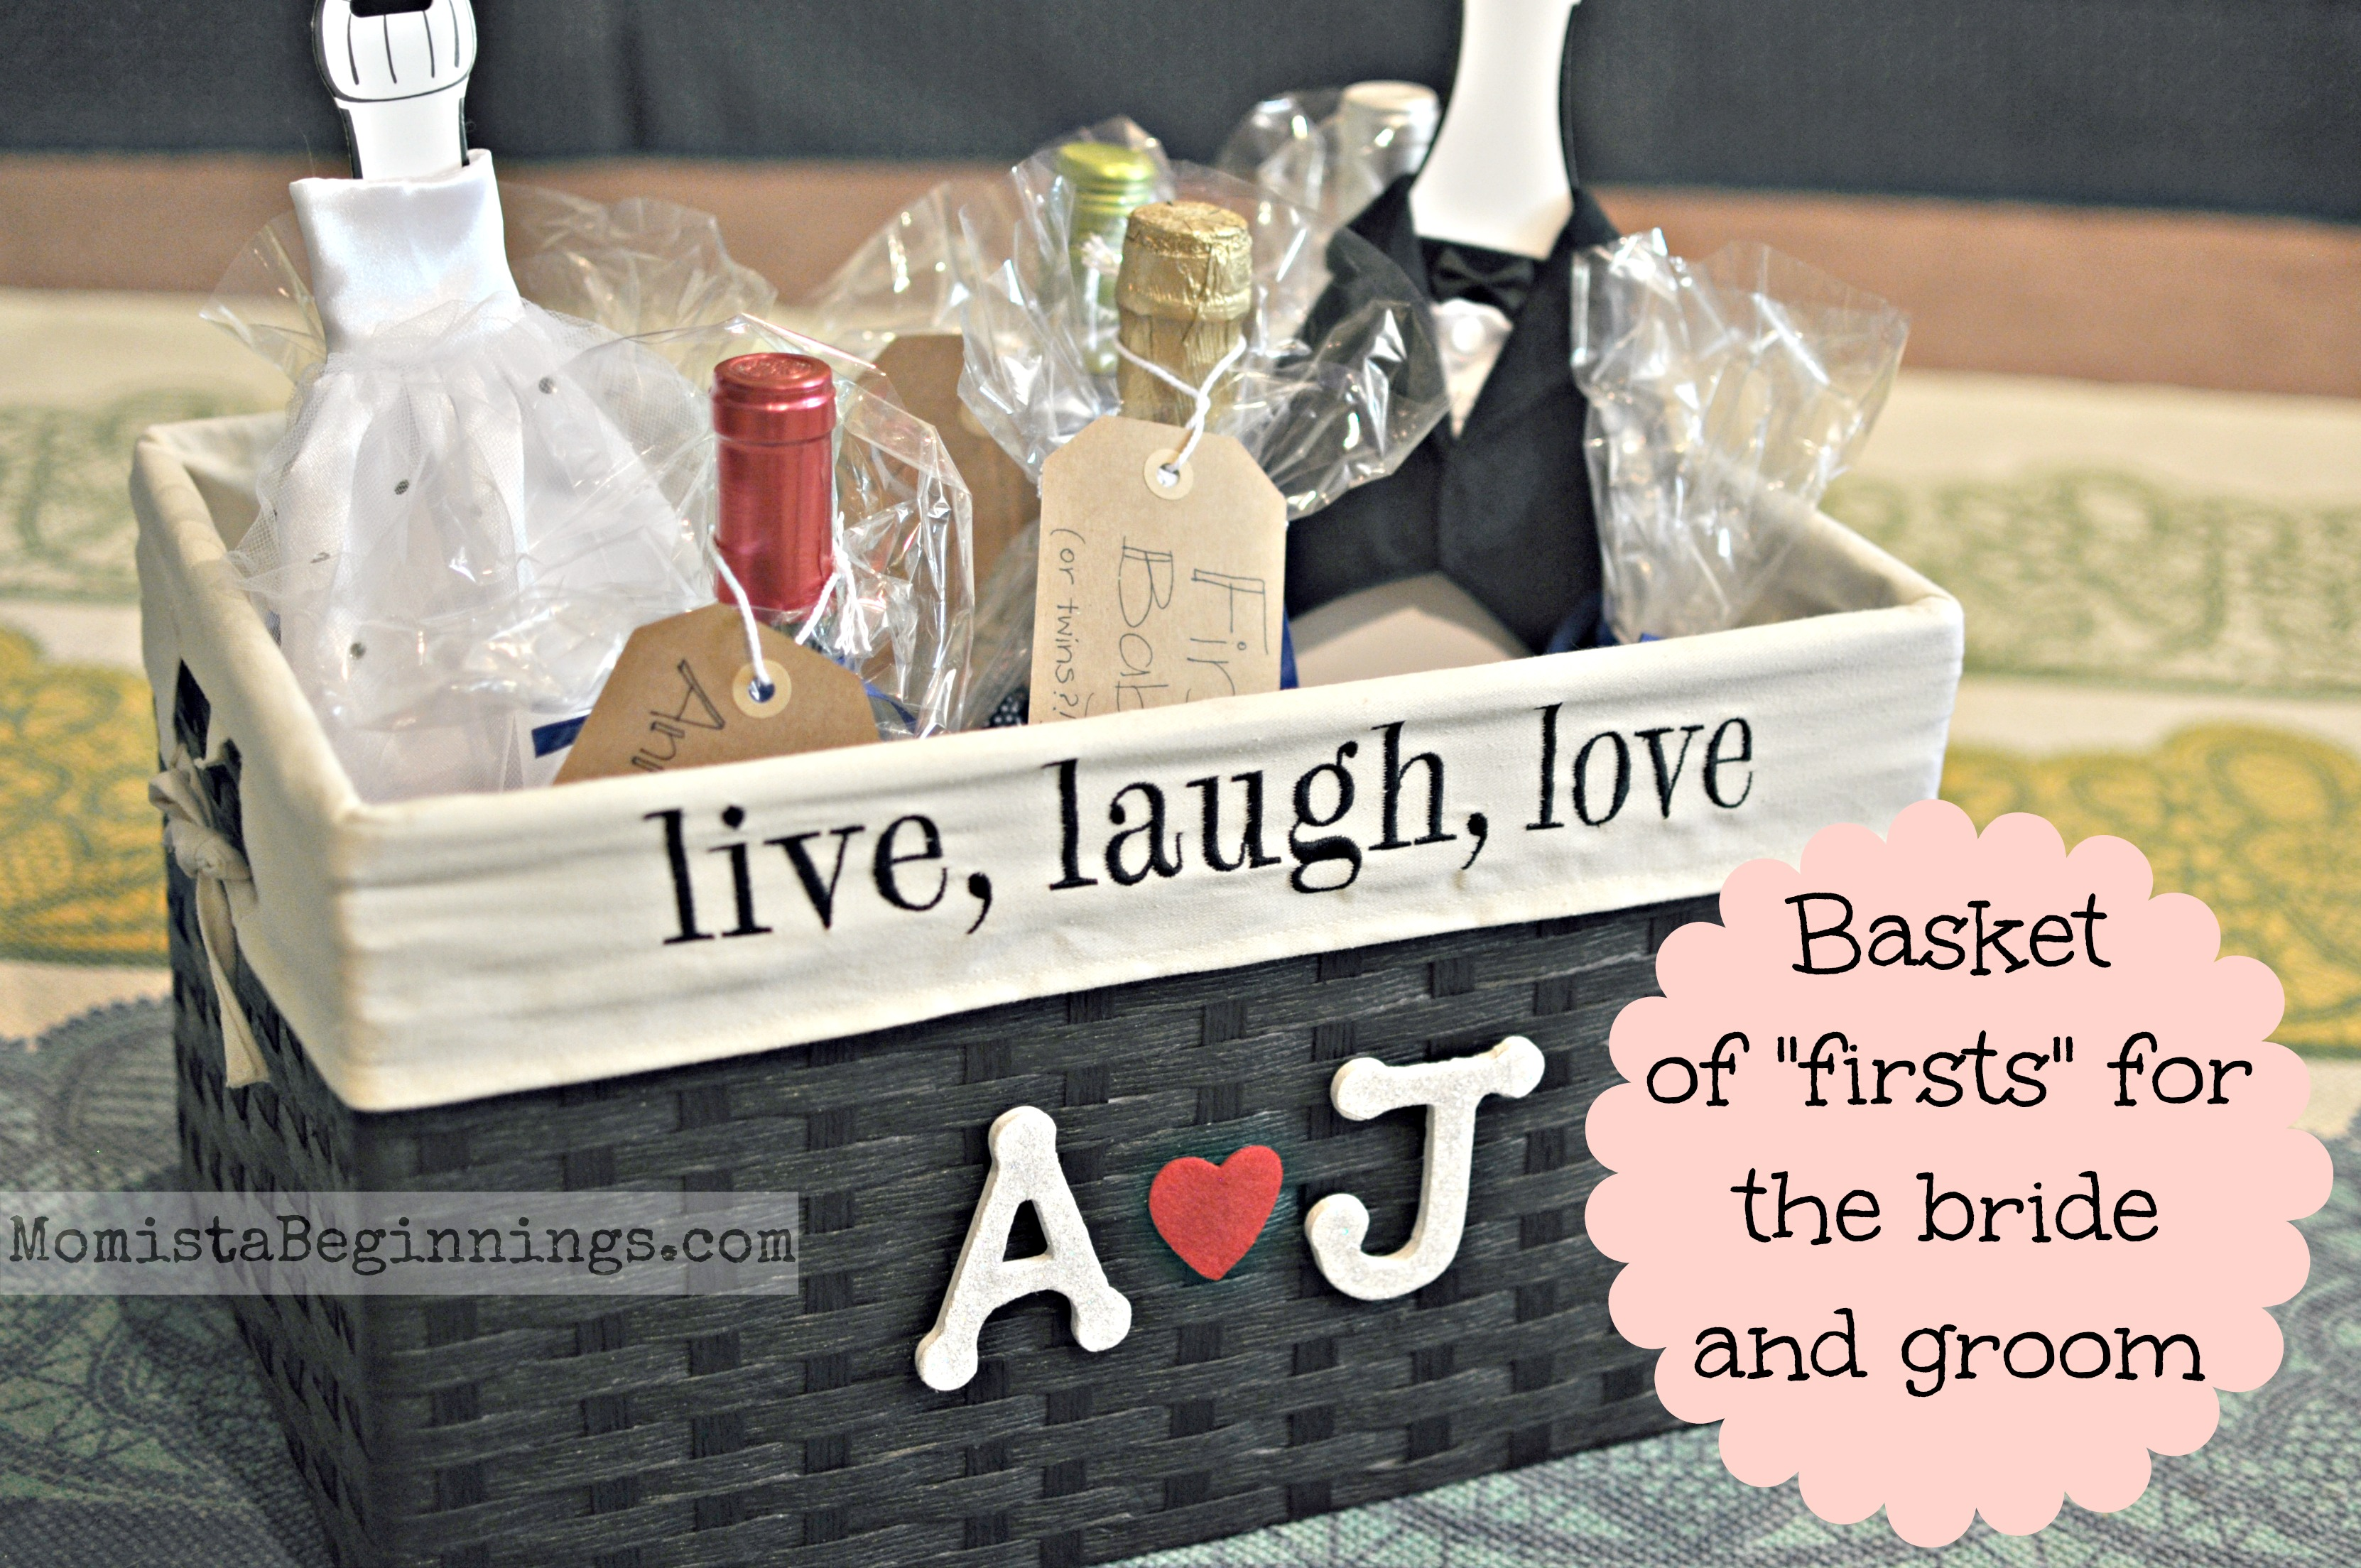 Diy Bridal Shower Gift Basket Ideas : The basket and the letters on the basket (which I glued) are from ...